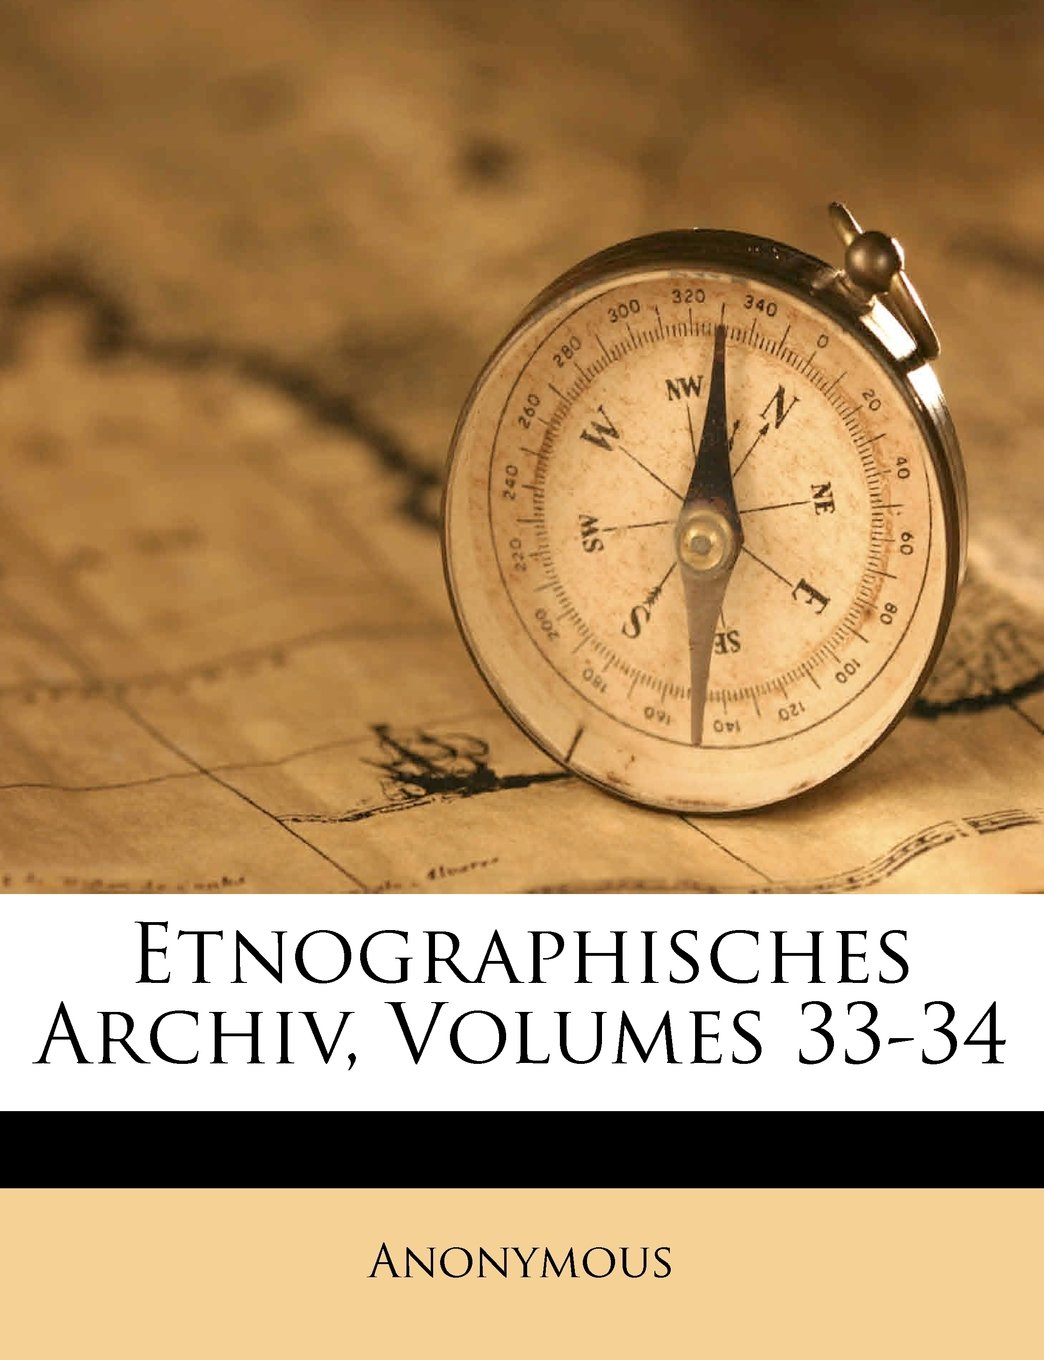 Etnographisches Archiv, Volumes 33-34 (German Edition) pdf